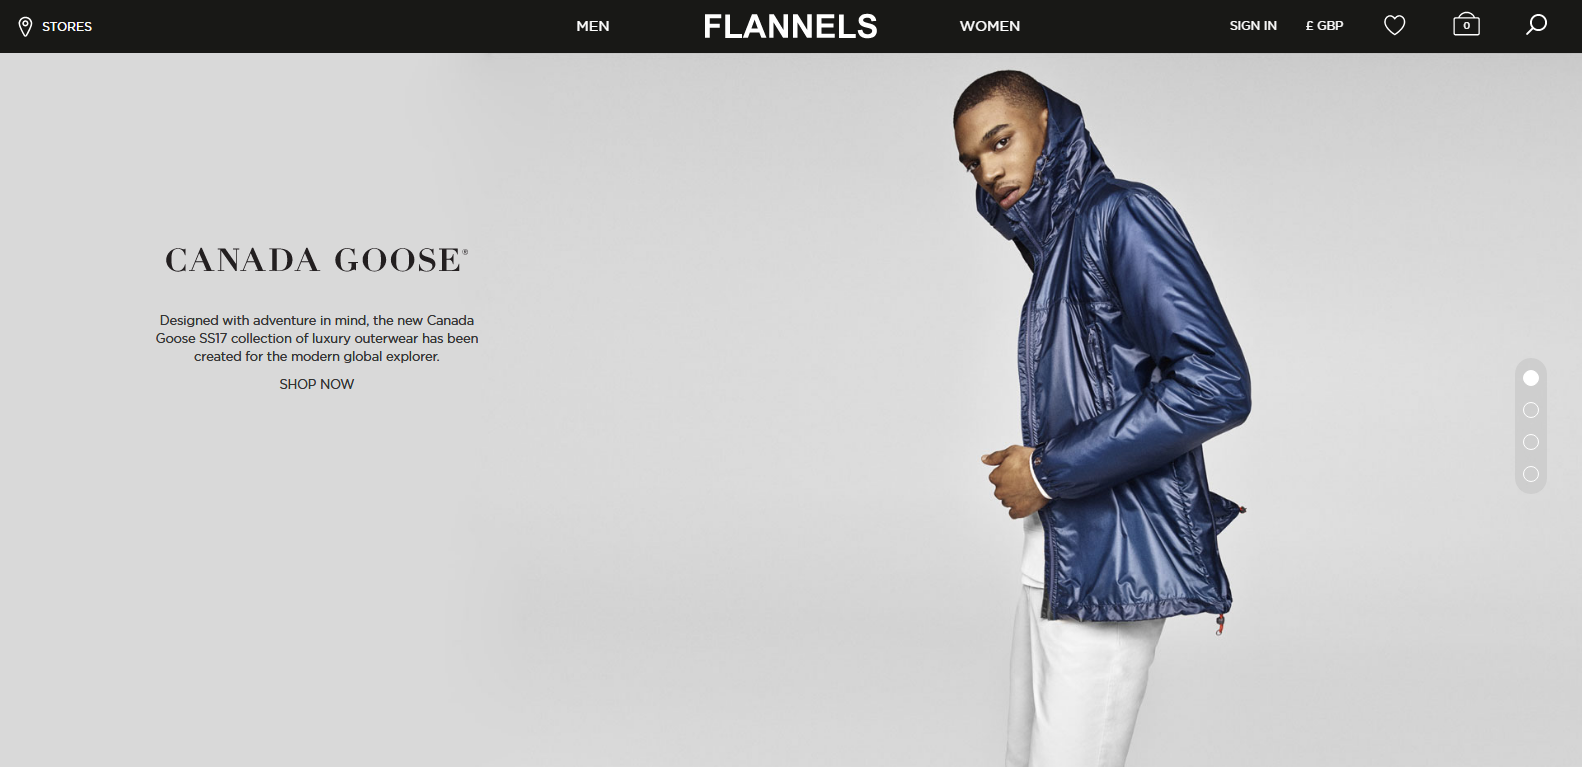 Flannels Promo Codes for November, Save with 11 active Flannels promo codes, coupons, and free shipping deals. 🔥 Today's Top Deal: Save 10% Off Your Orders. On average, shoppers save $45 using Flannels coupons from utorrent-movies.ml